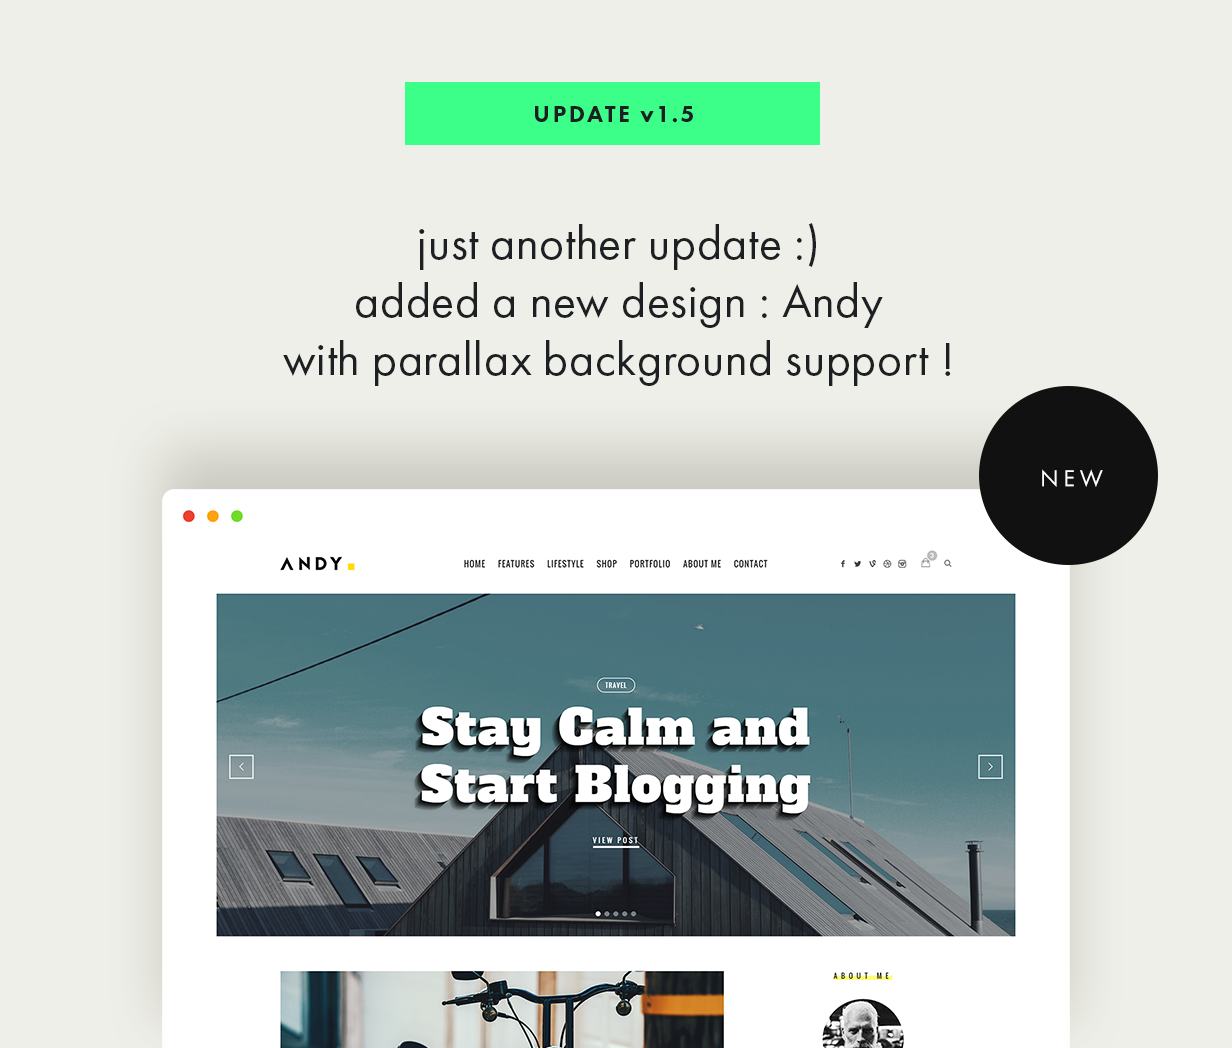 theblogger theme update v1.5